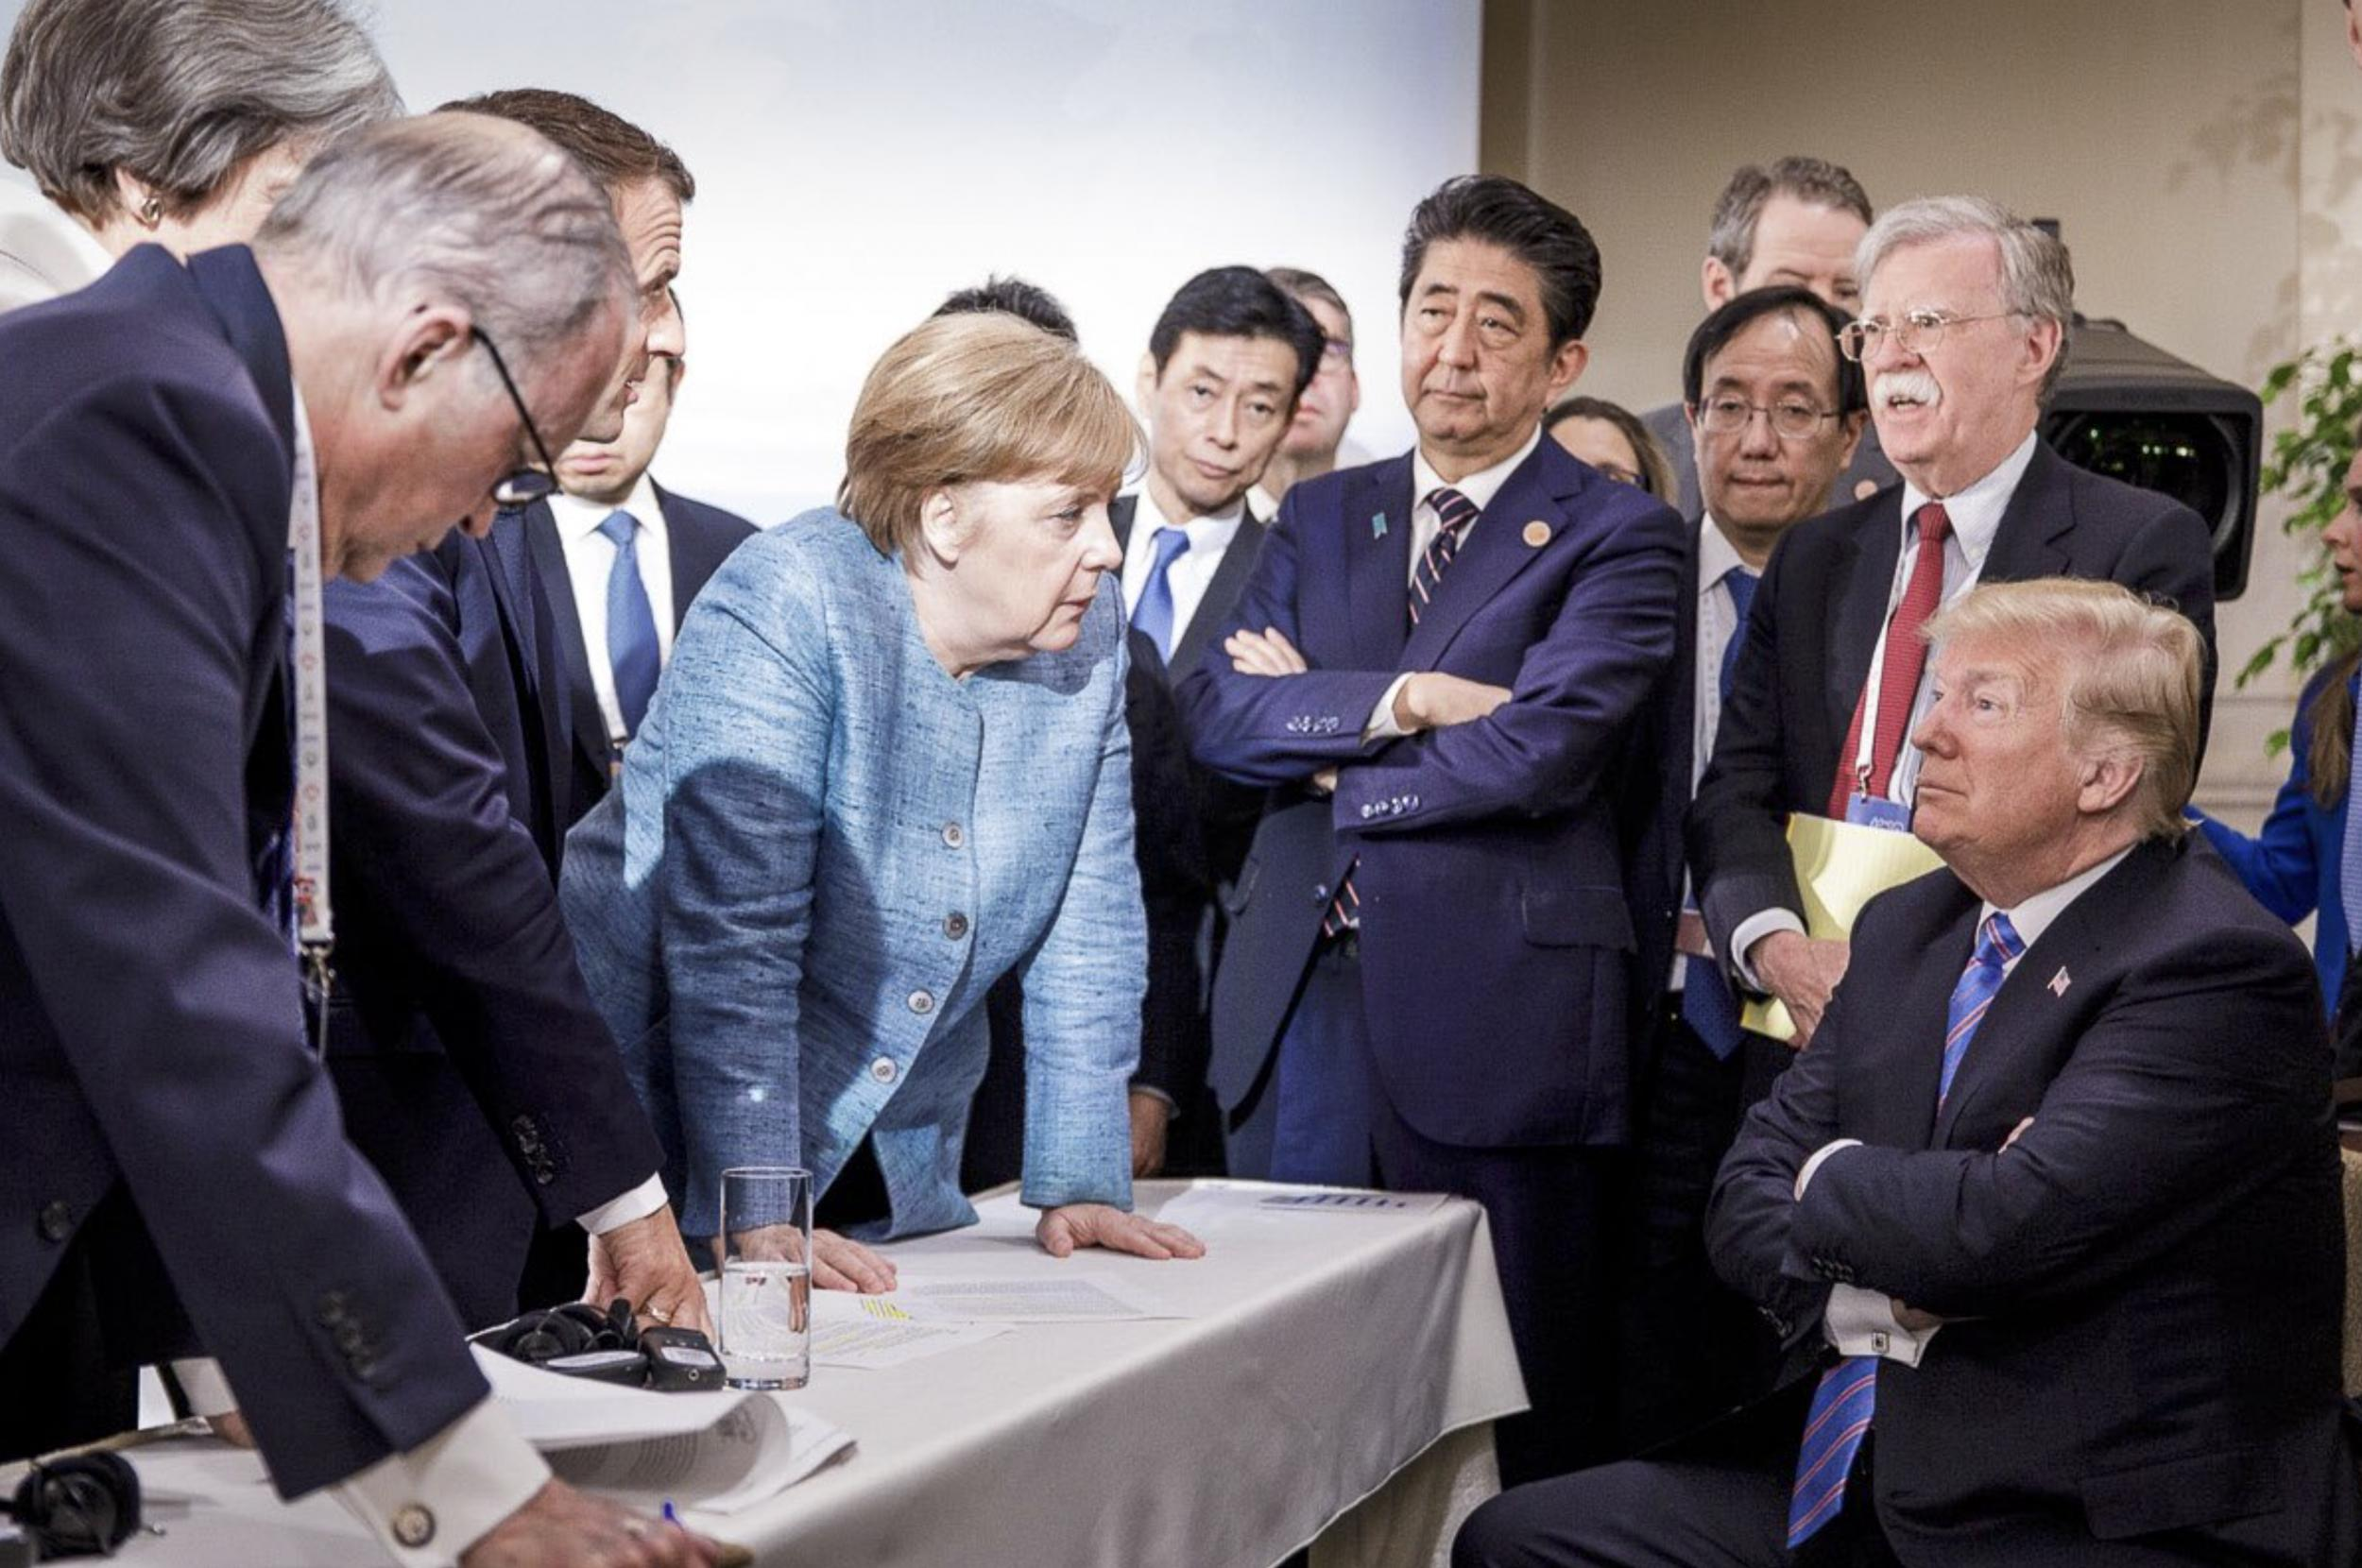 Angela Merkel shares viral photo of her staring down Donald Trump at G7